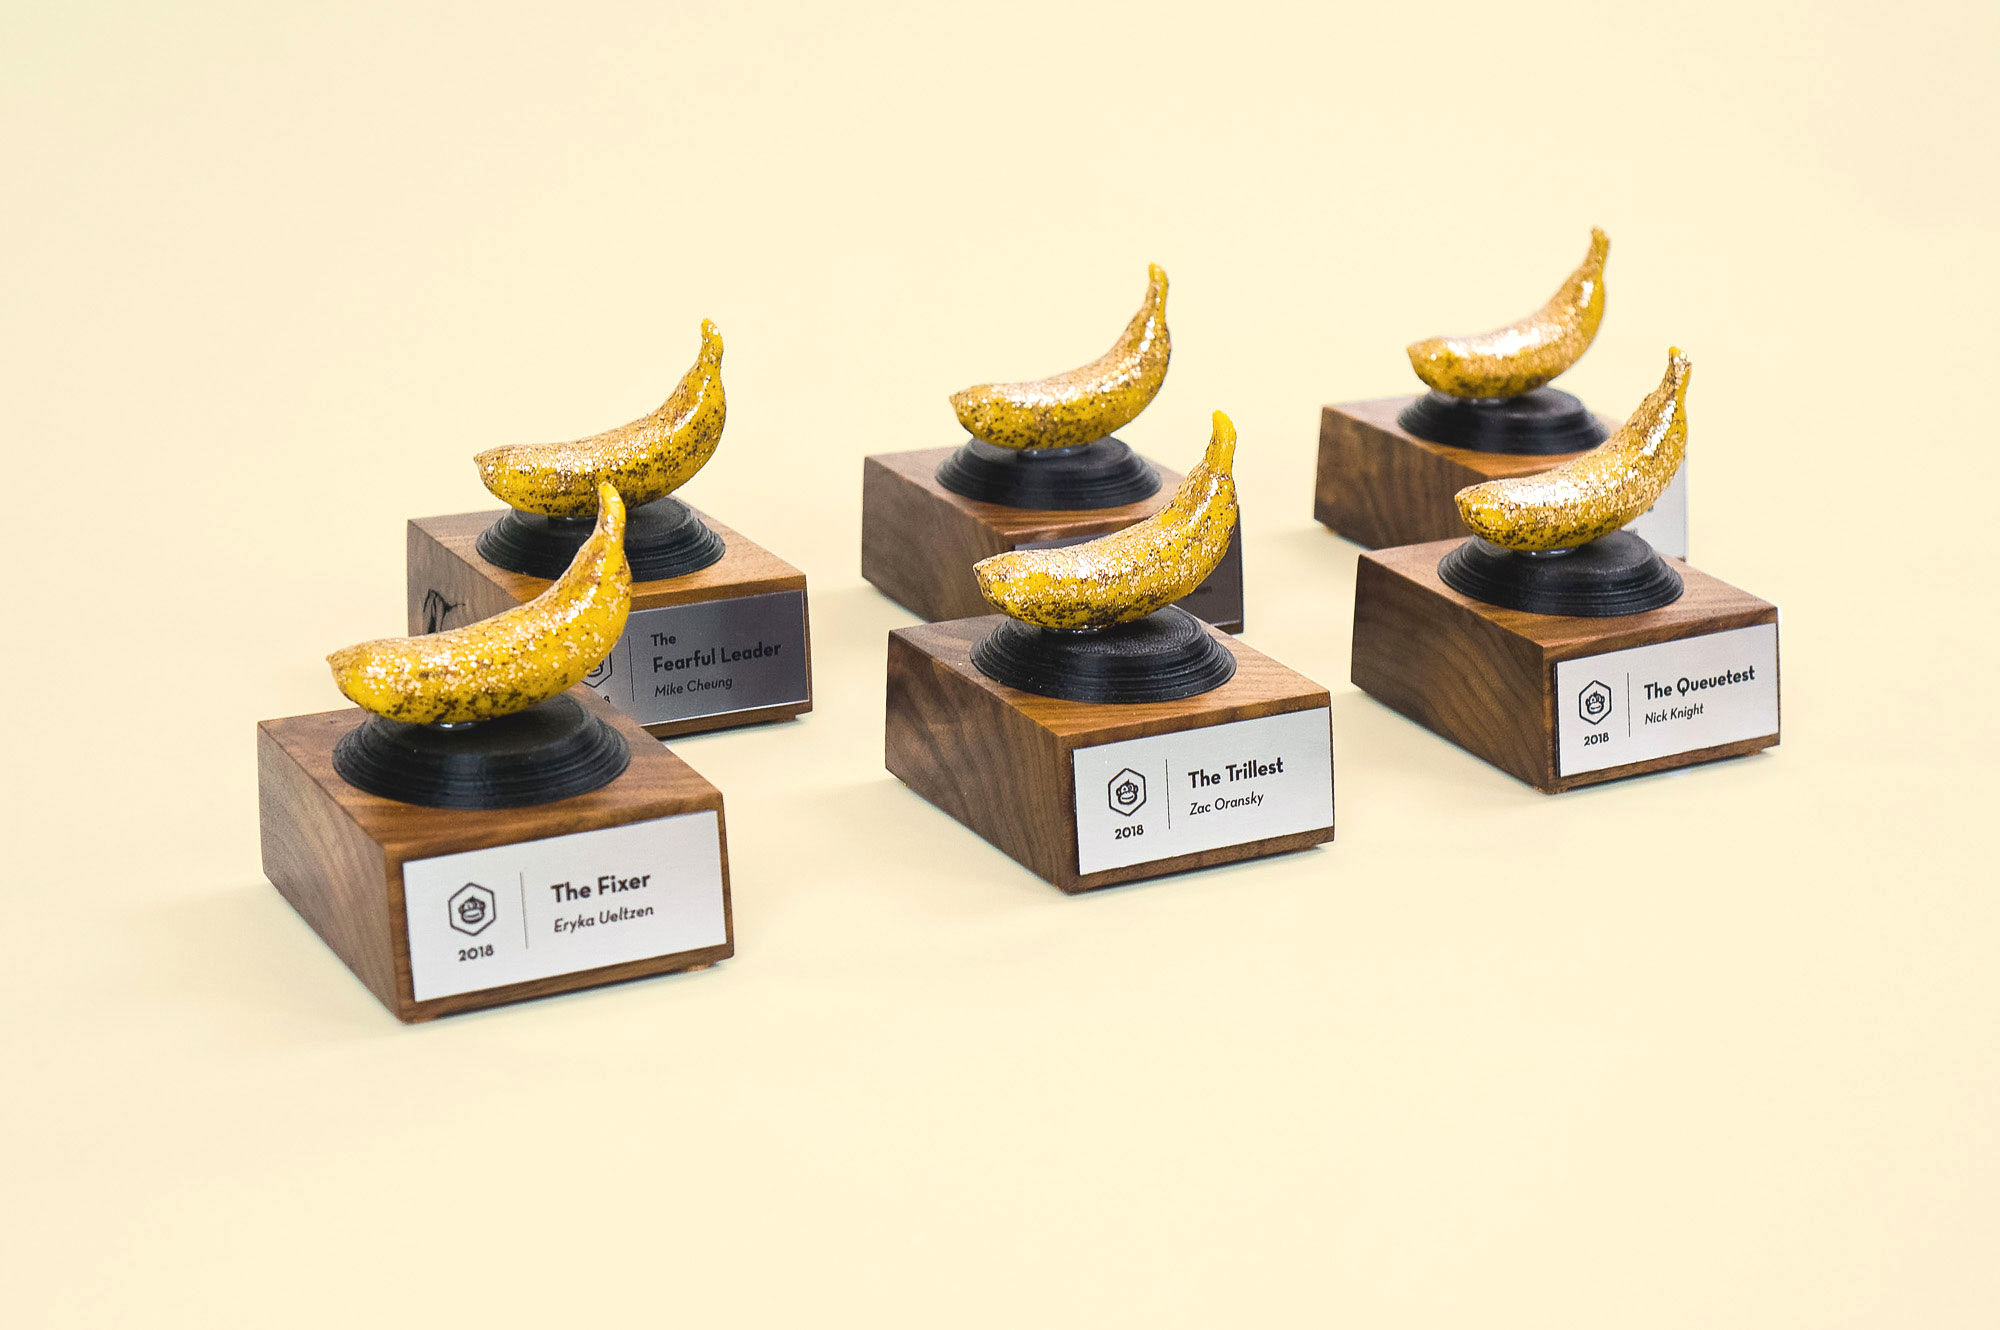 Sparkly banana shaped awards for Tinkering Monkey